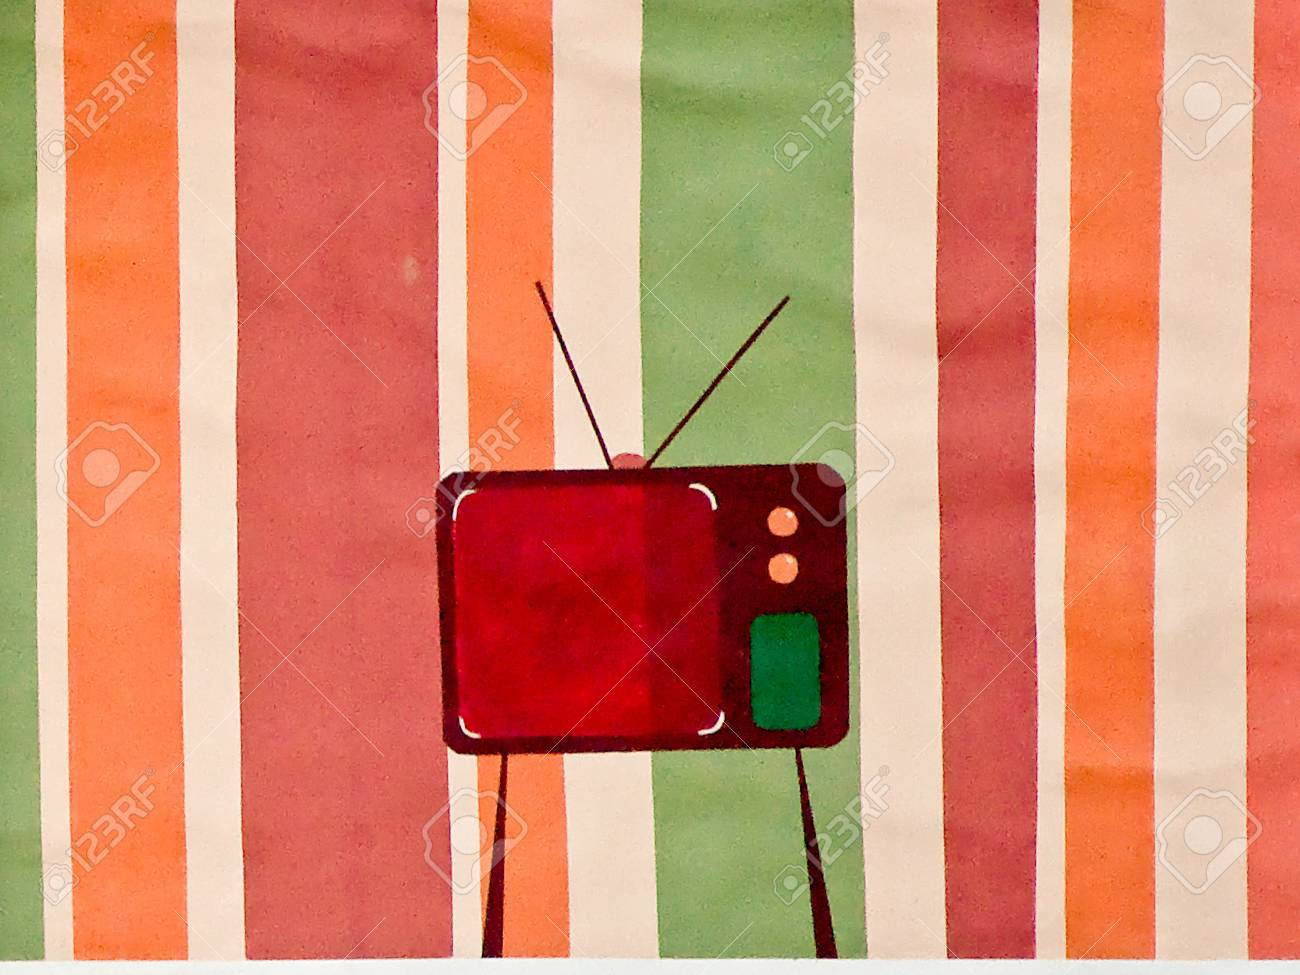 The Painting tv on wall background Stock Photo - 12309495